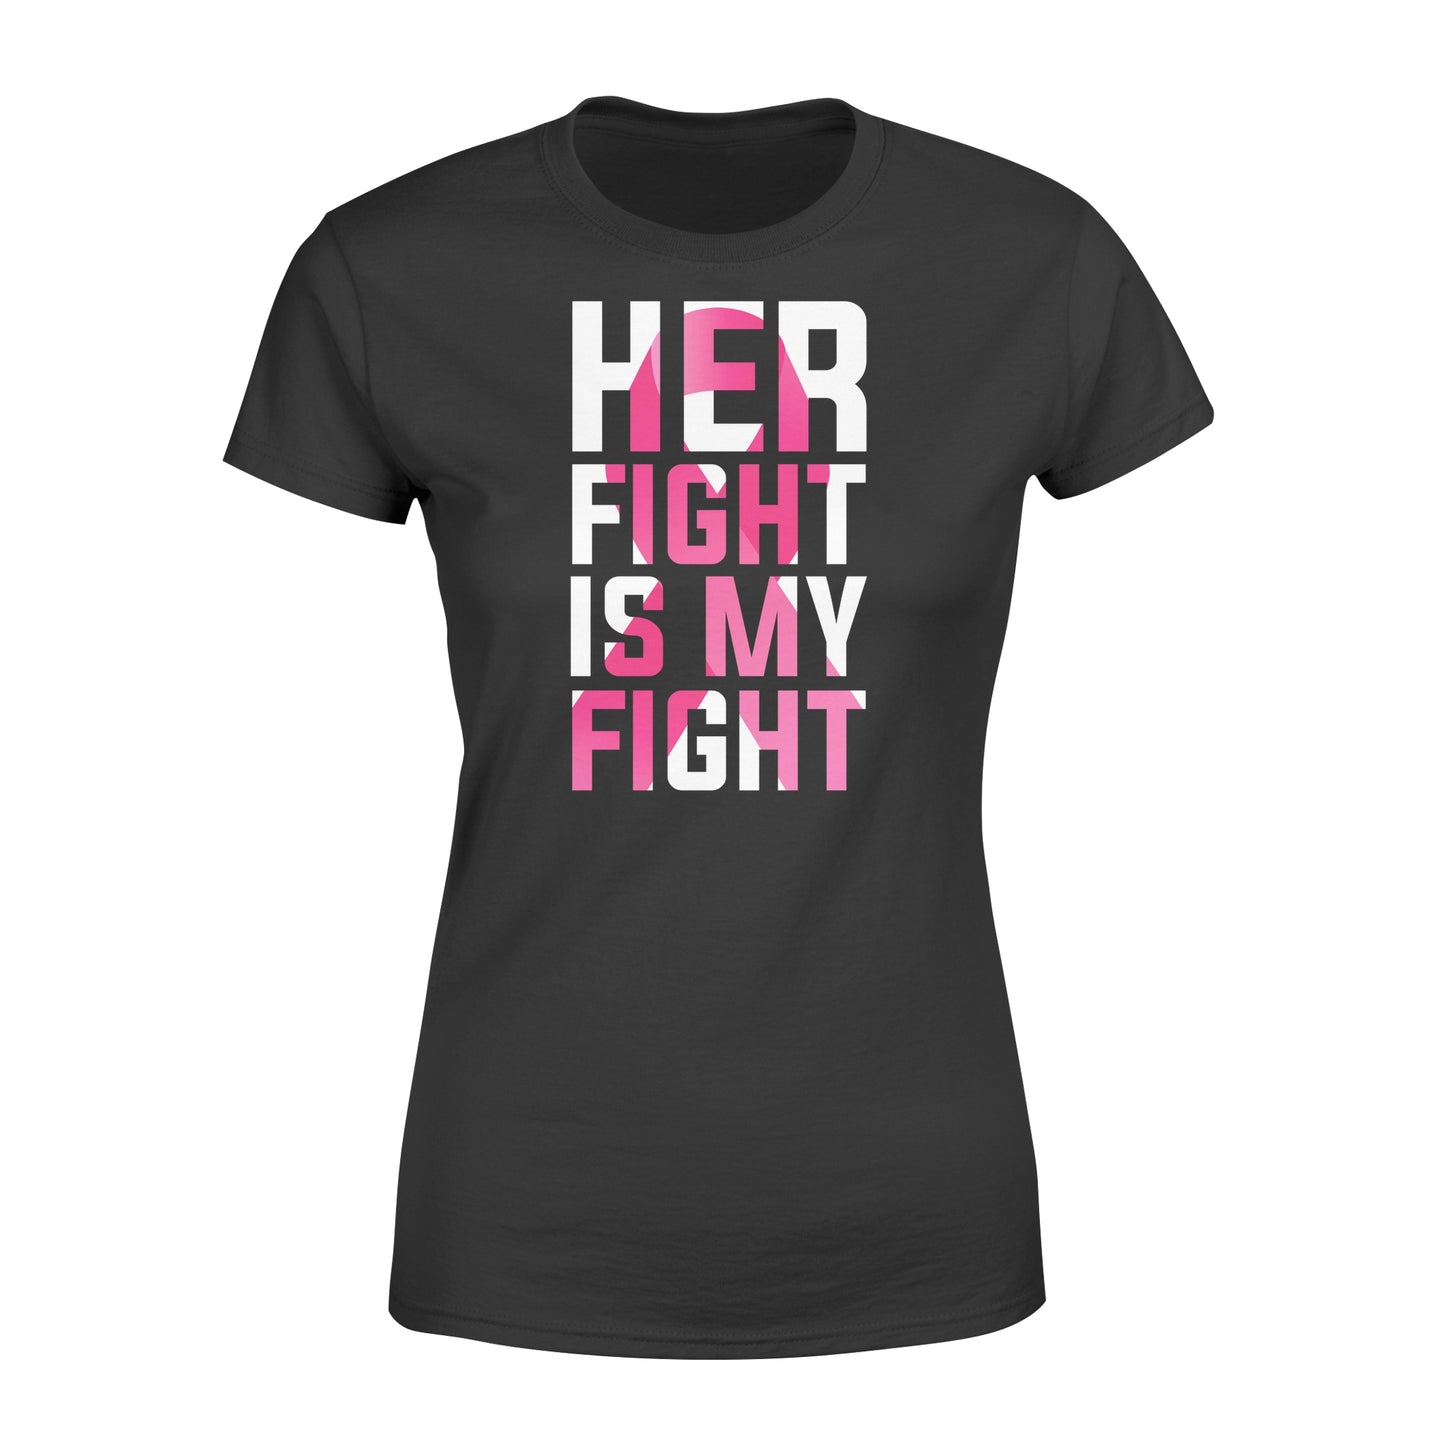 Her Fight Is My Fight - Standard Women's T-shirt Apparel XS / Black